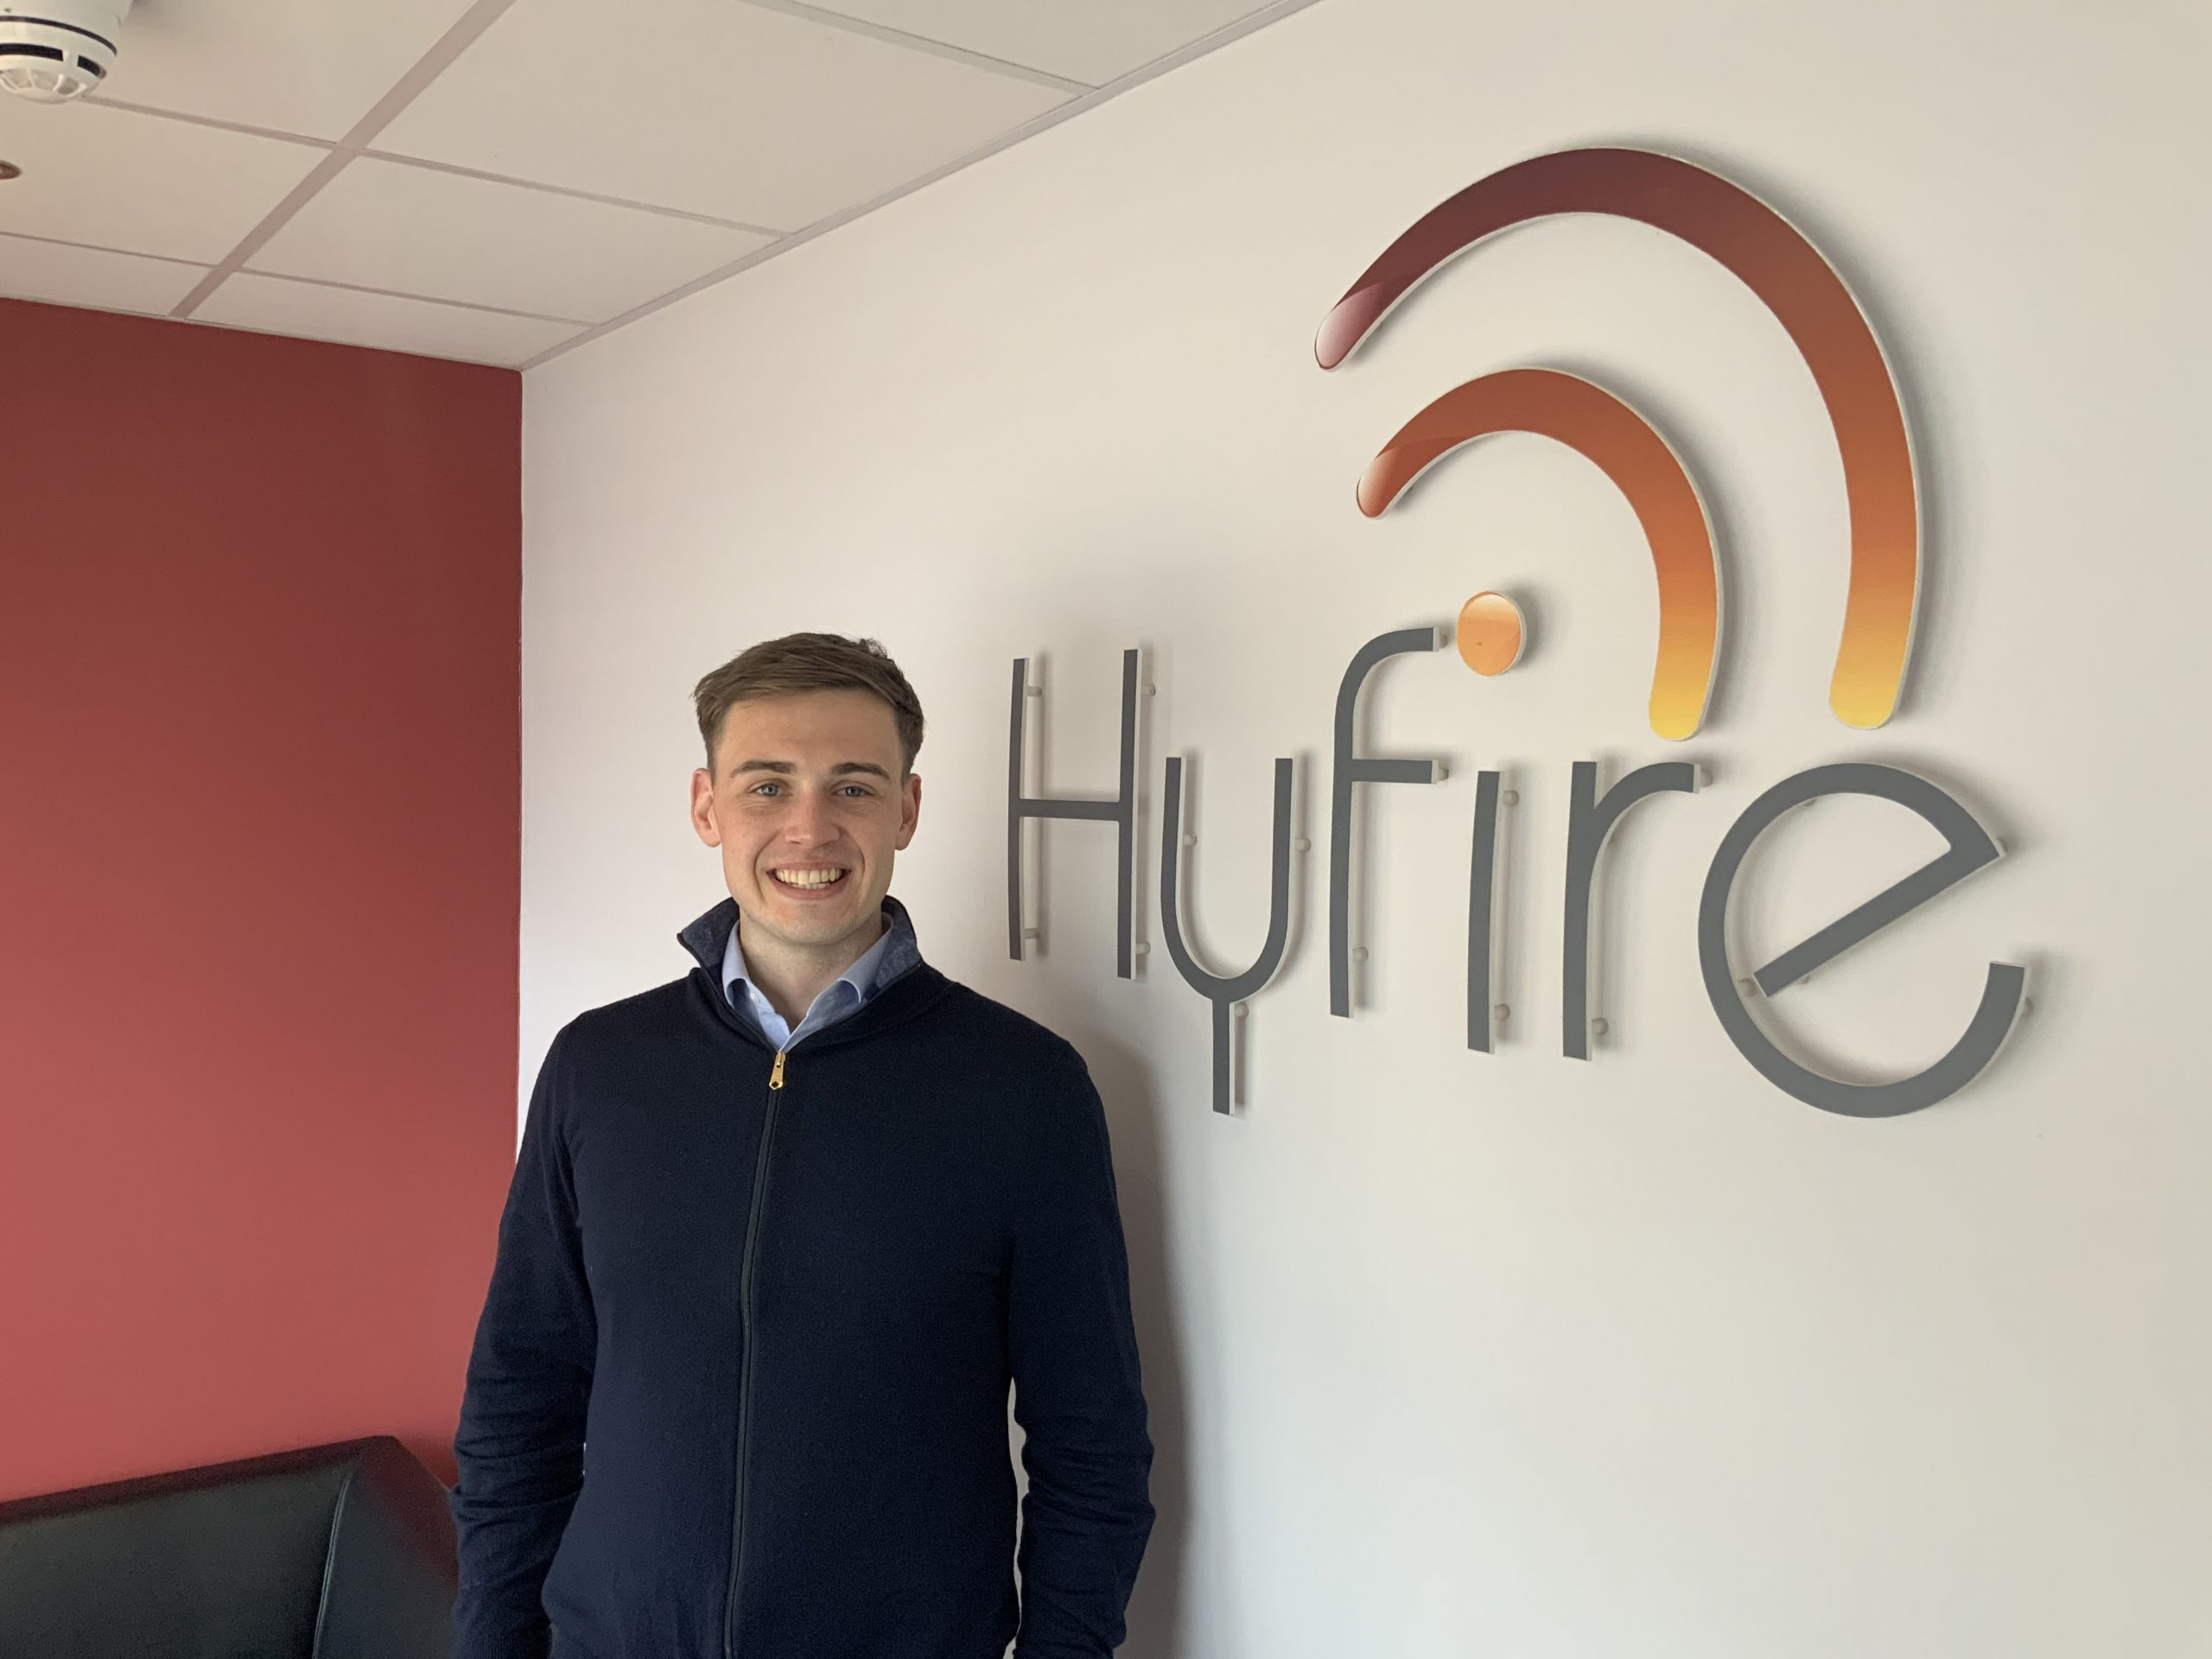 HYFIRE APPOINTS NEW SALES MANAGER FOR KEY SOUTH EASTERN REGION